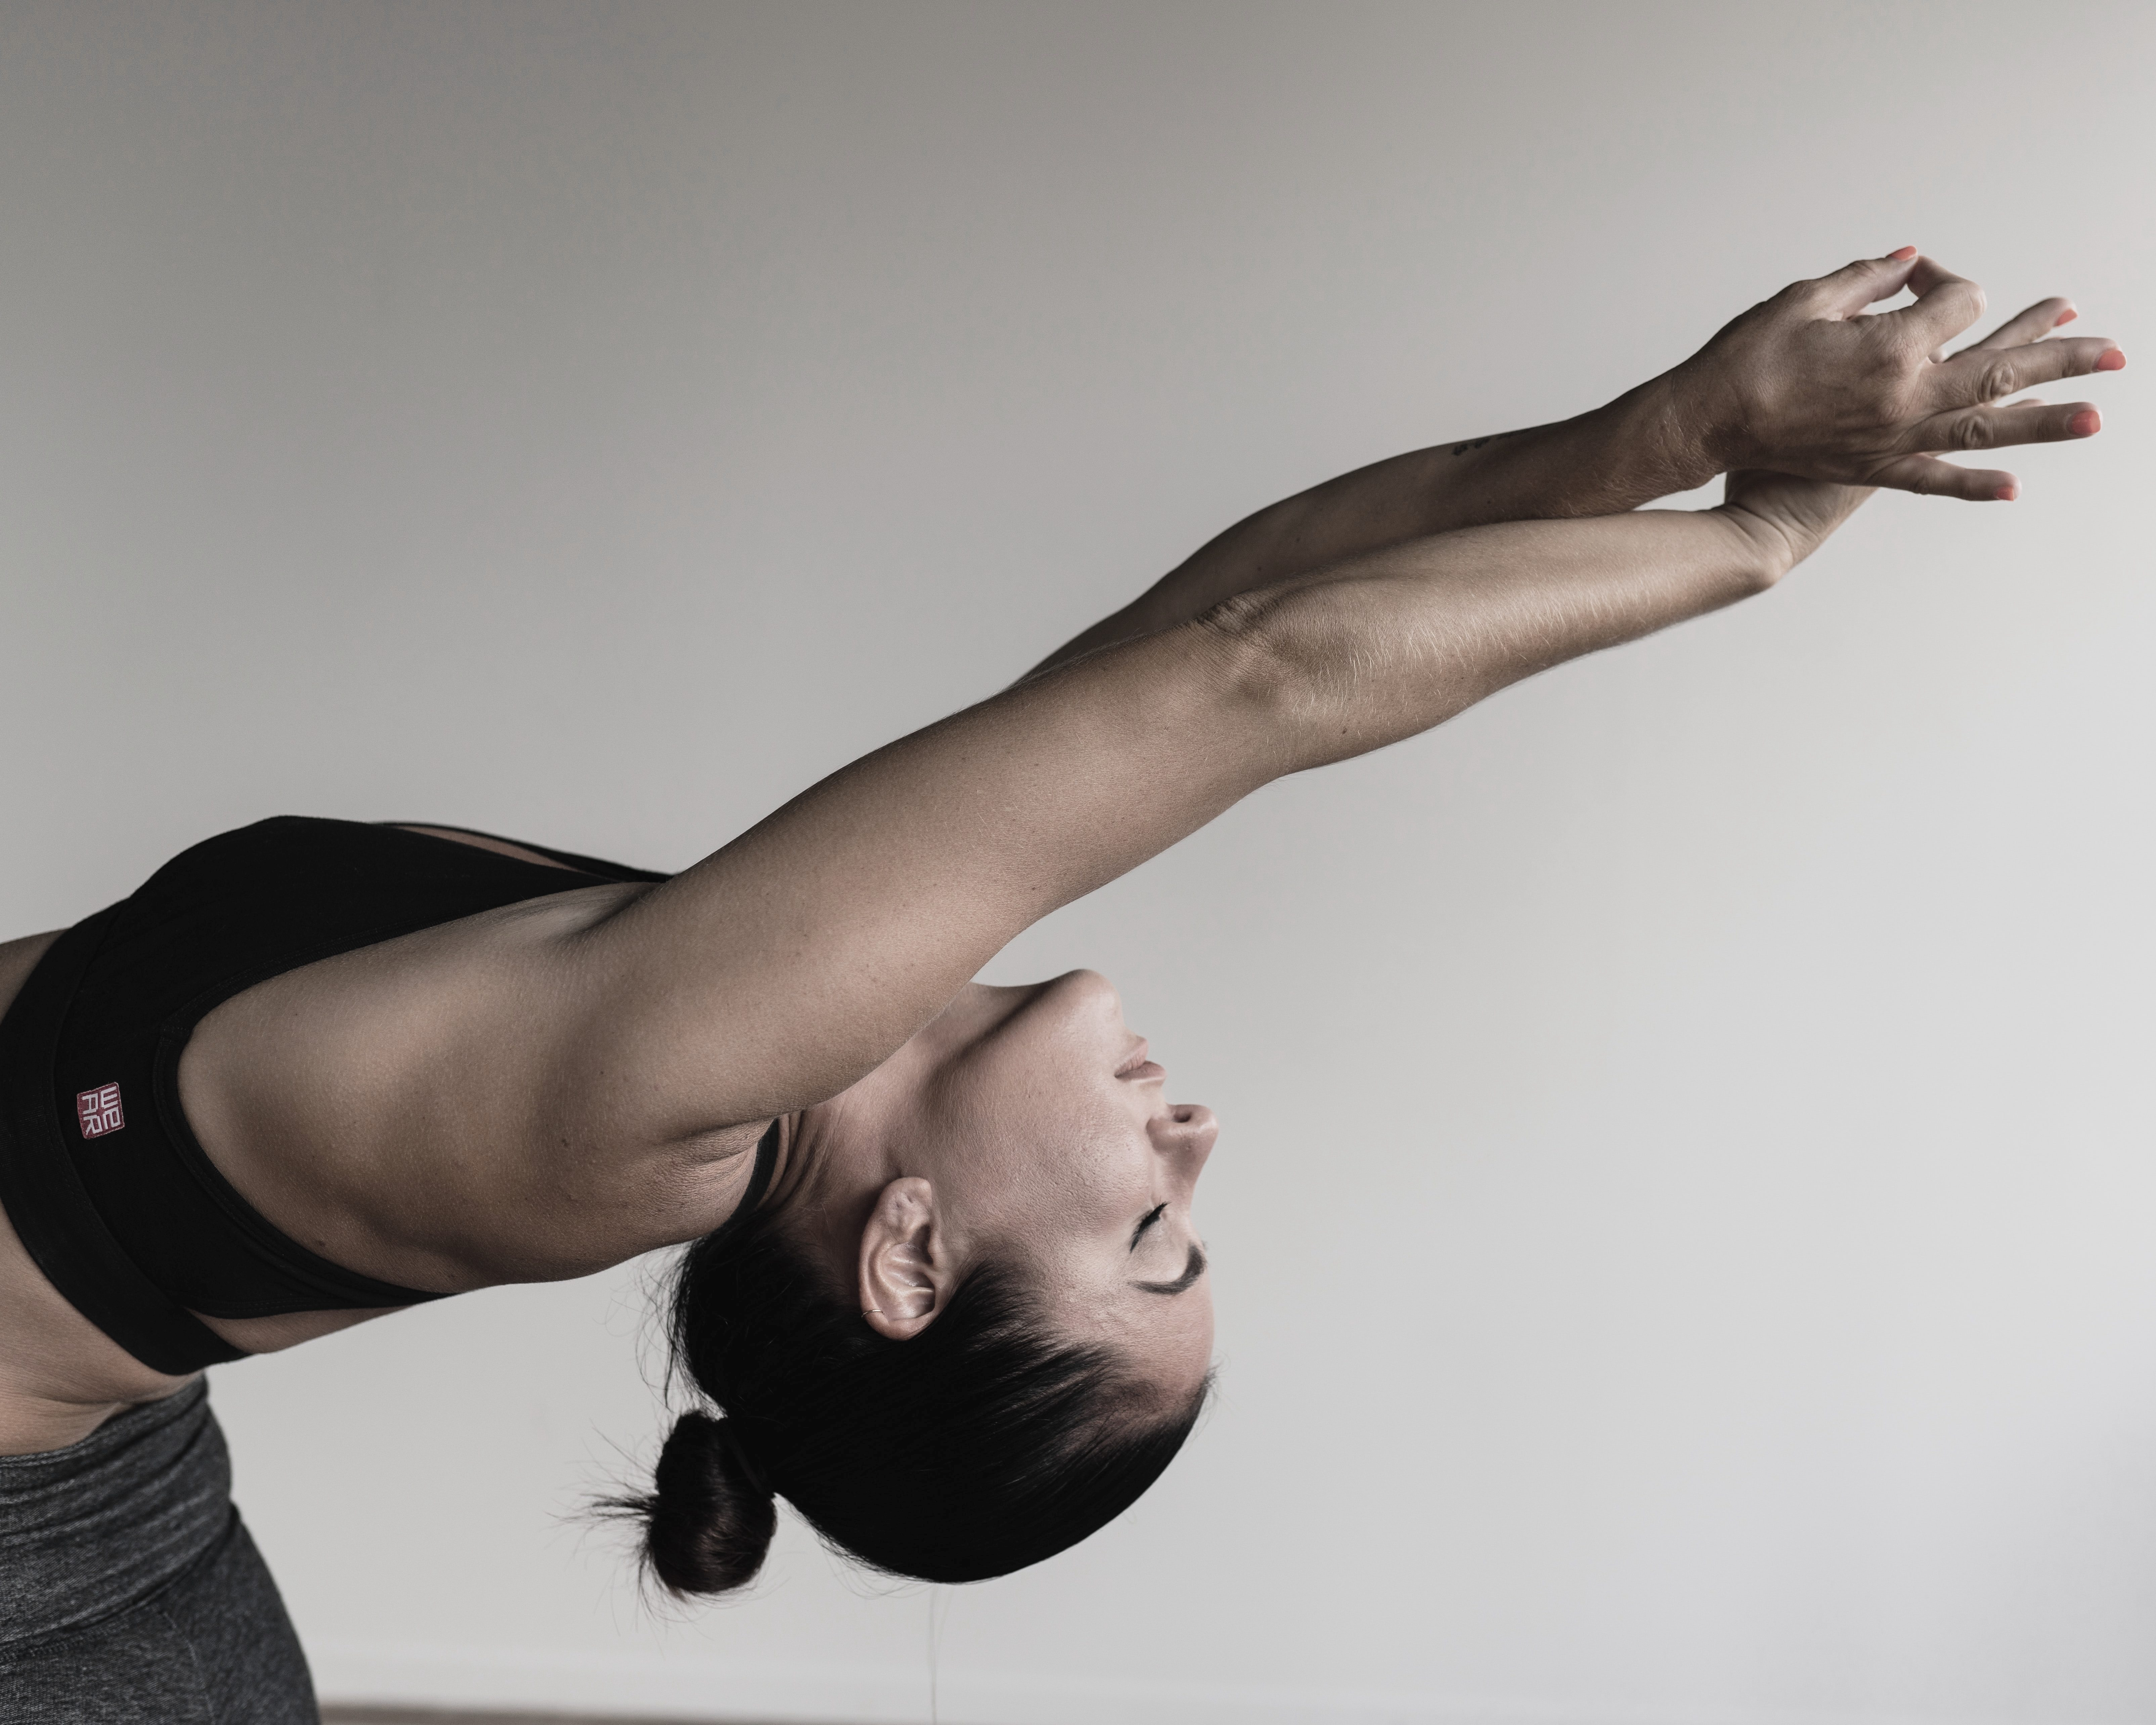 YOGA – IT'S NOT ALL ABOUT BEING BENDY